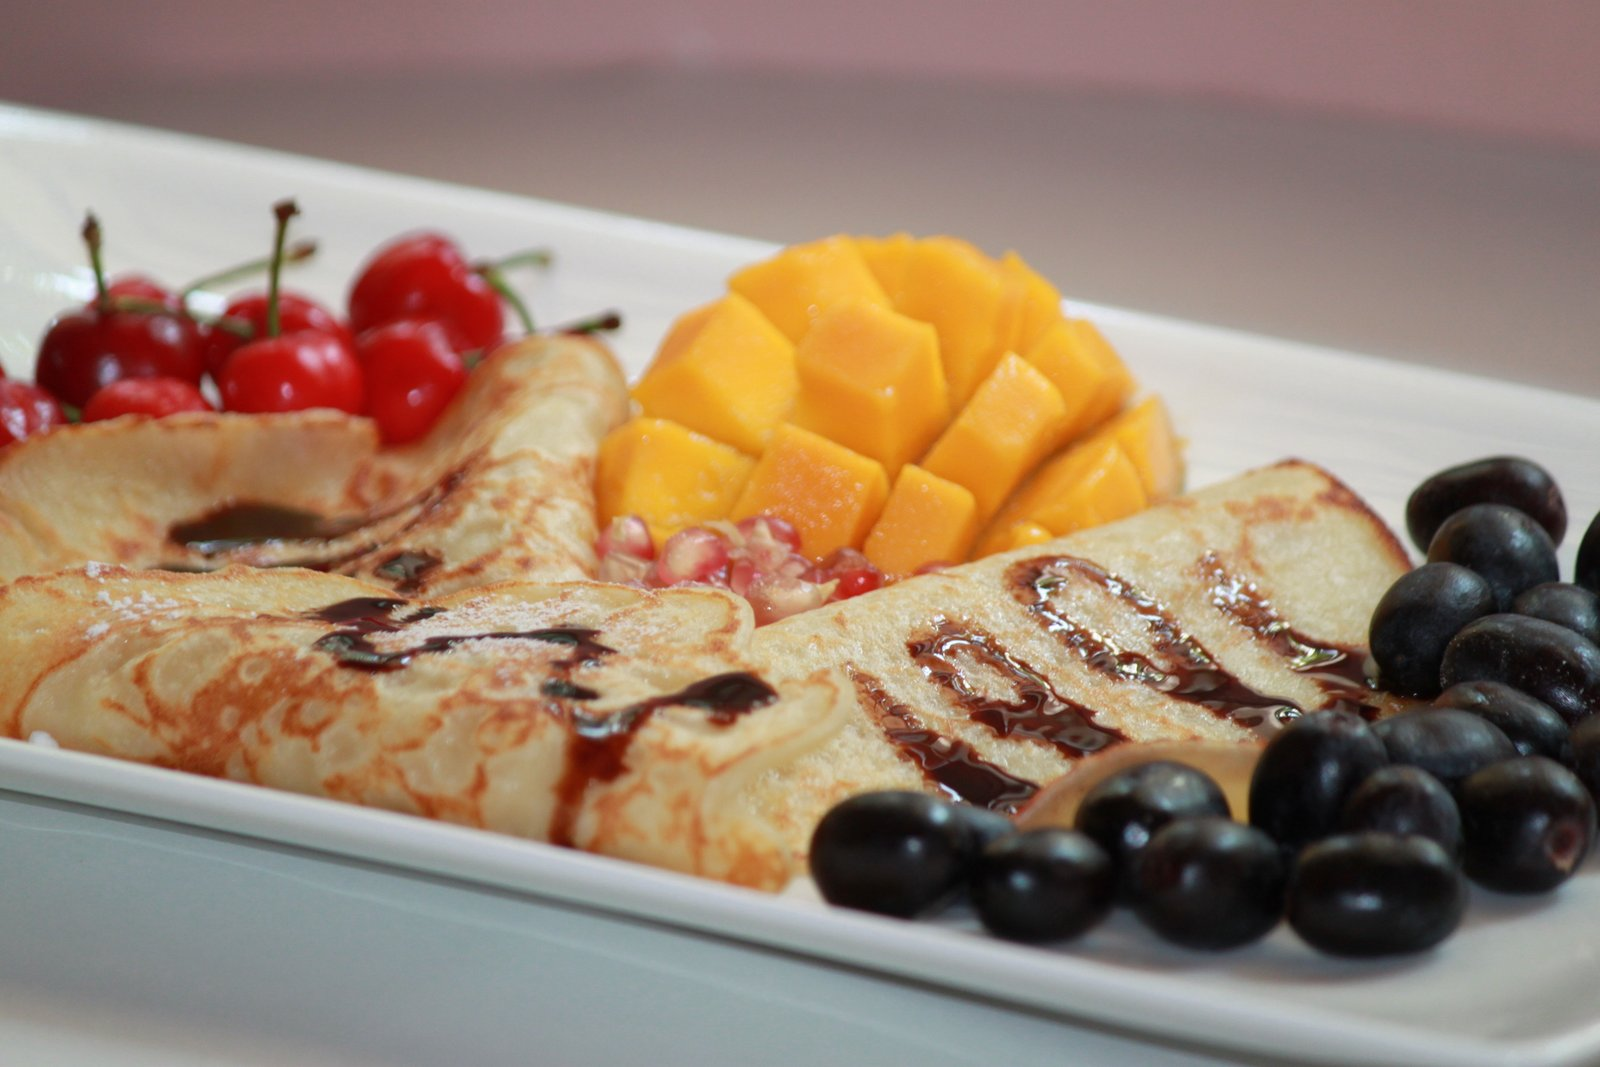 Pancakes Drizzled With Chocolate Sauce Served Fruits Jaggery Recipe Breakfast In Bed